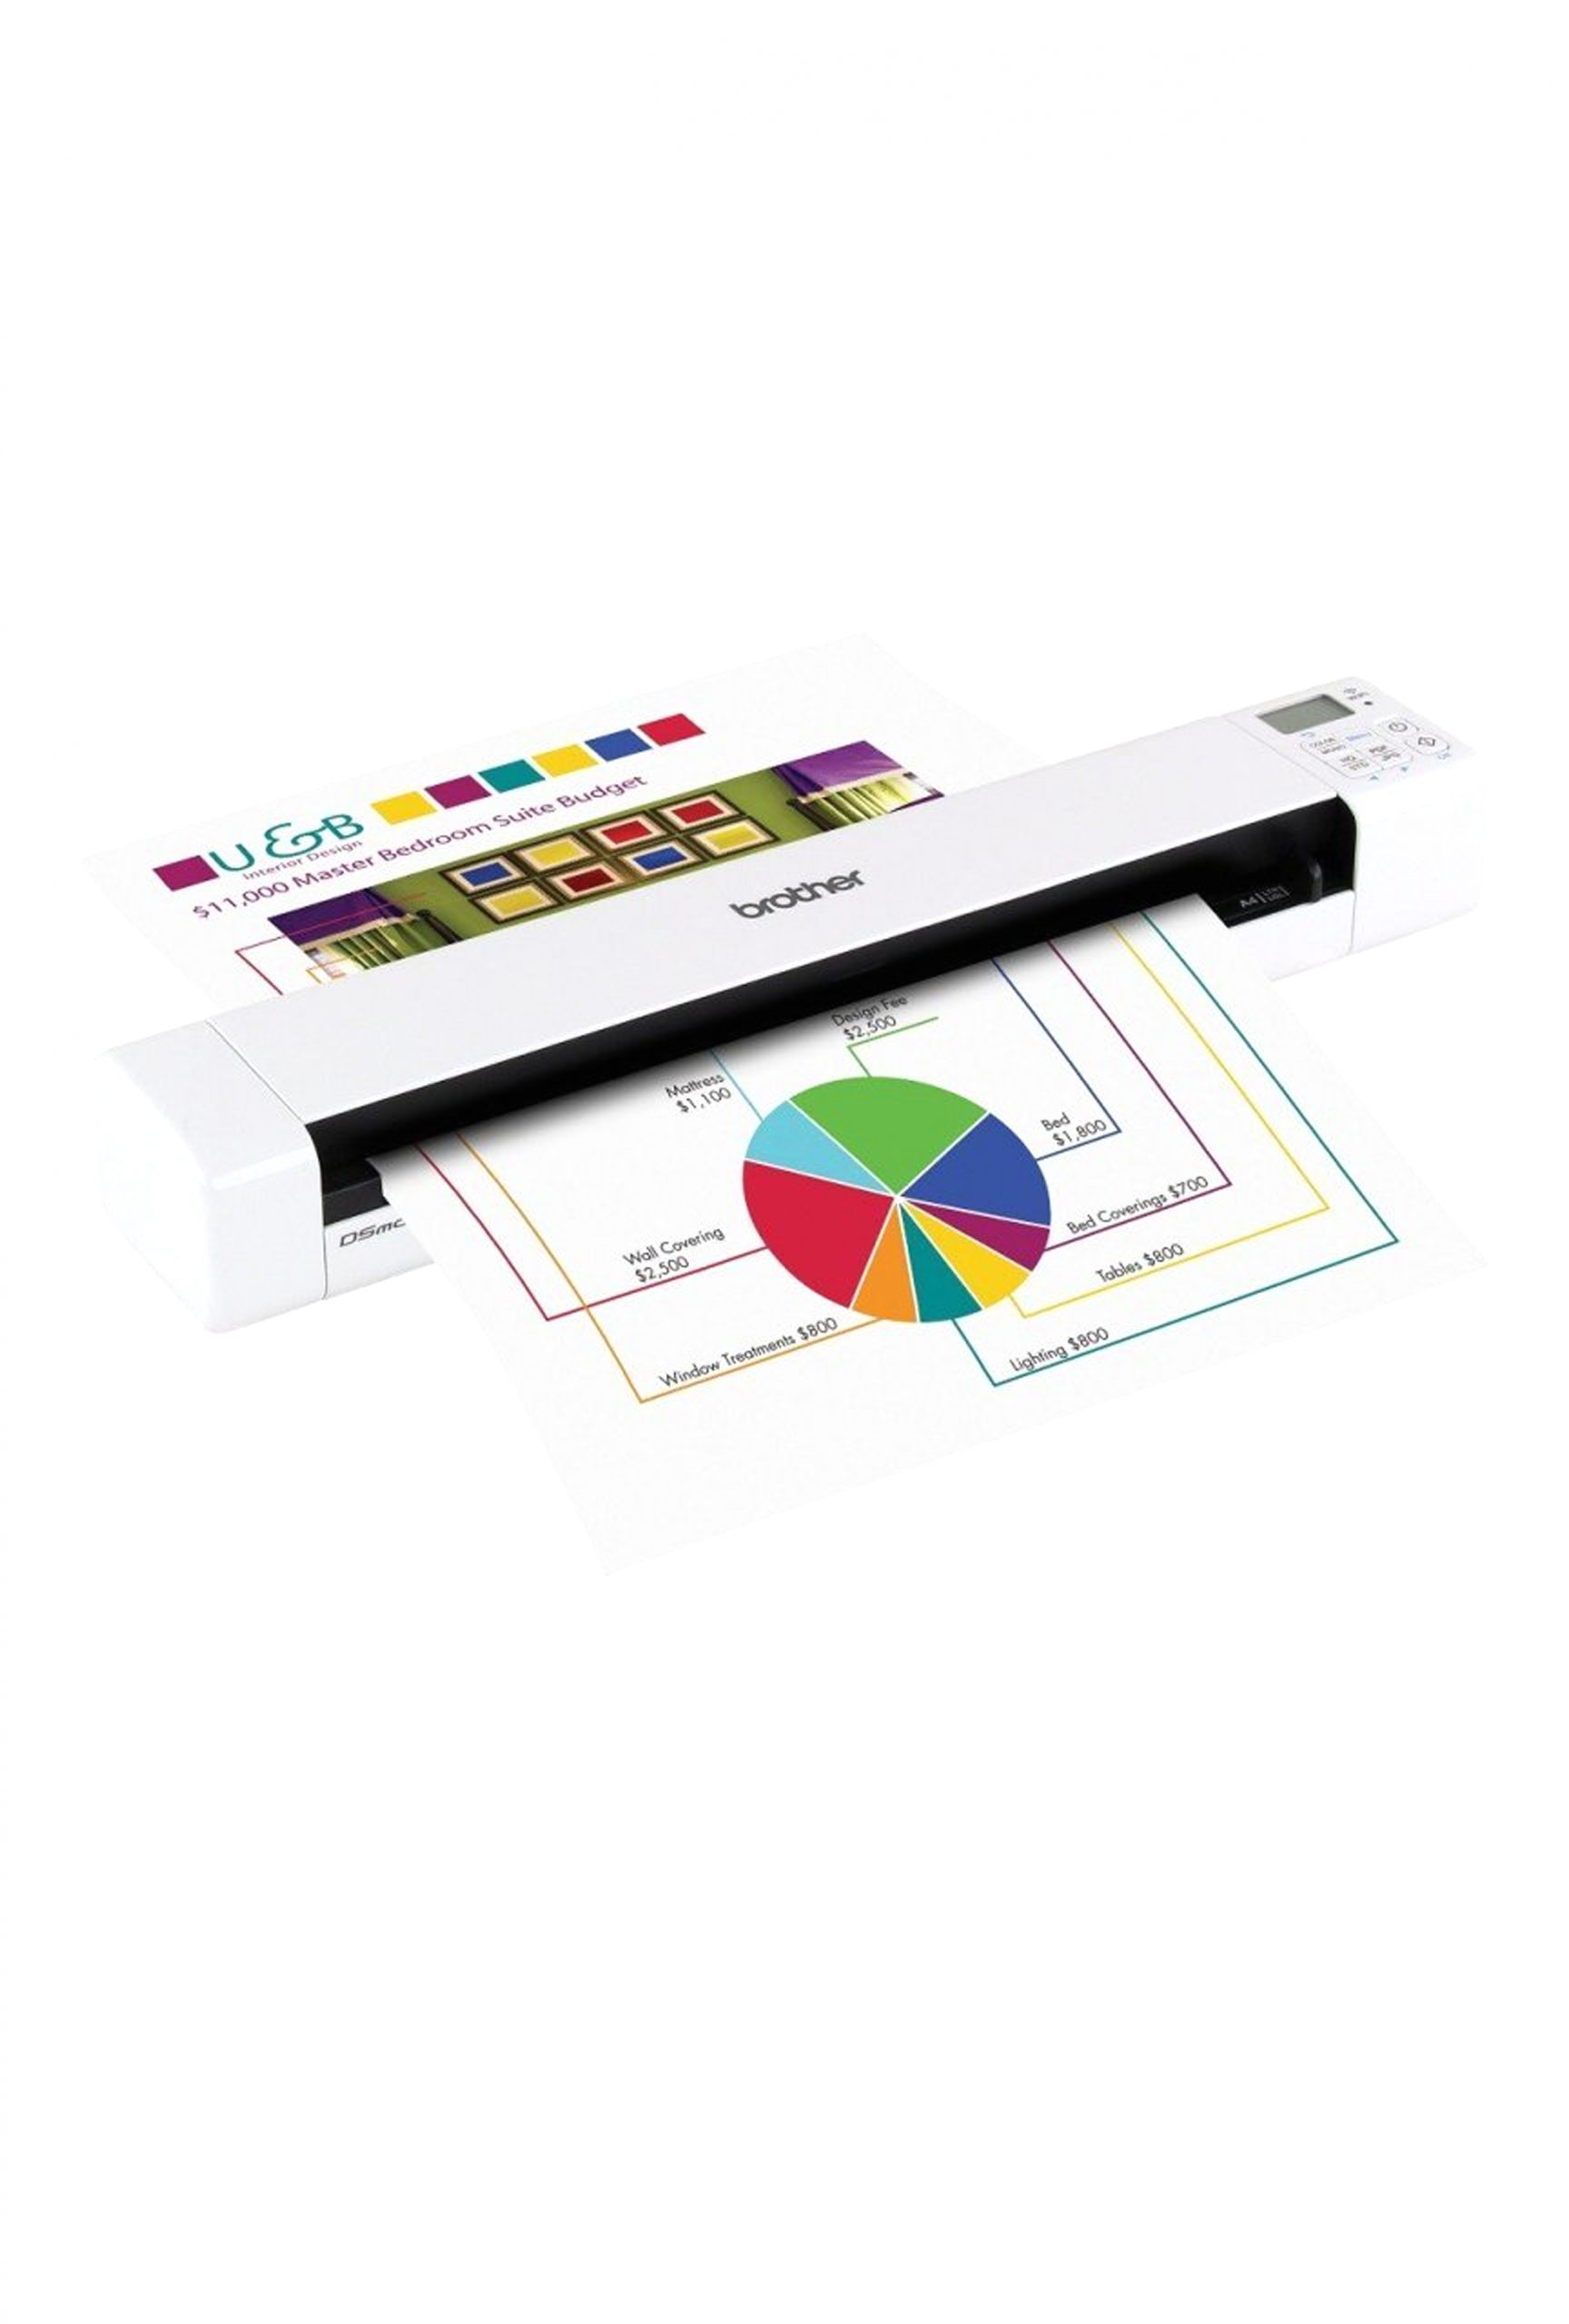 Brother Ds 820w Wireless Mobile Color Page Scanner Brother Ds 820w Wireless Mobile Color Page Scanner 8ppm